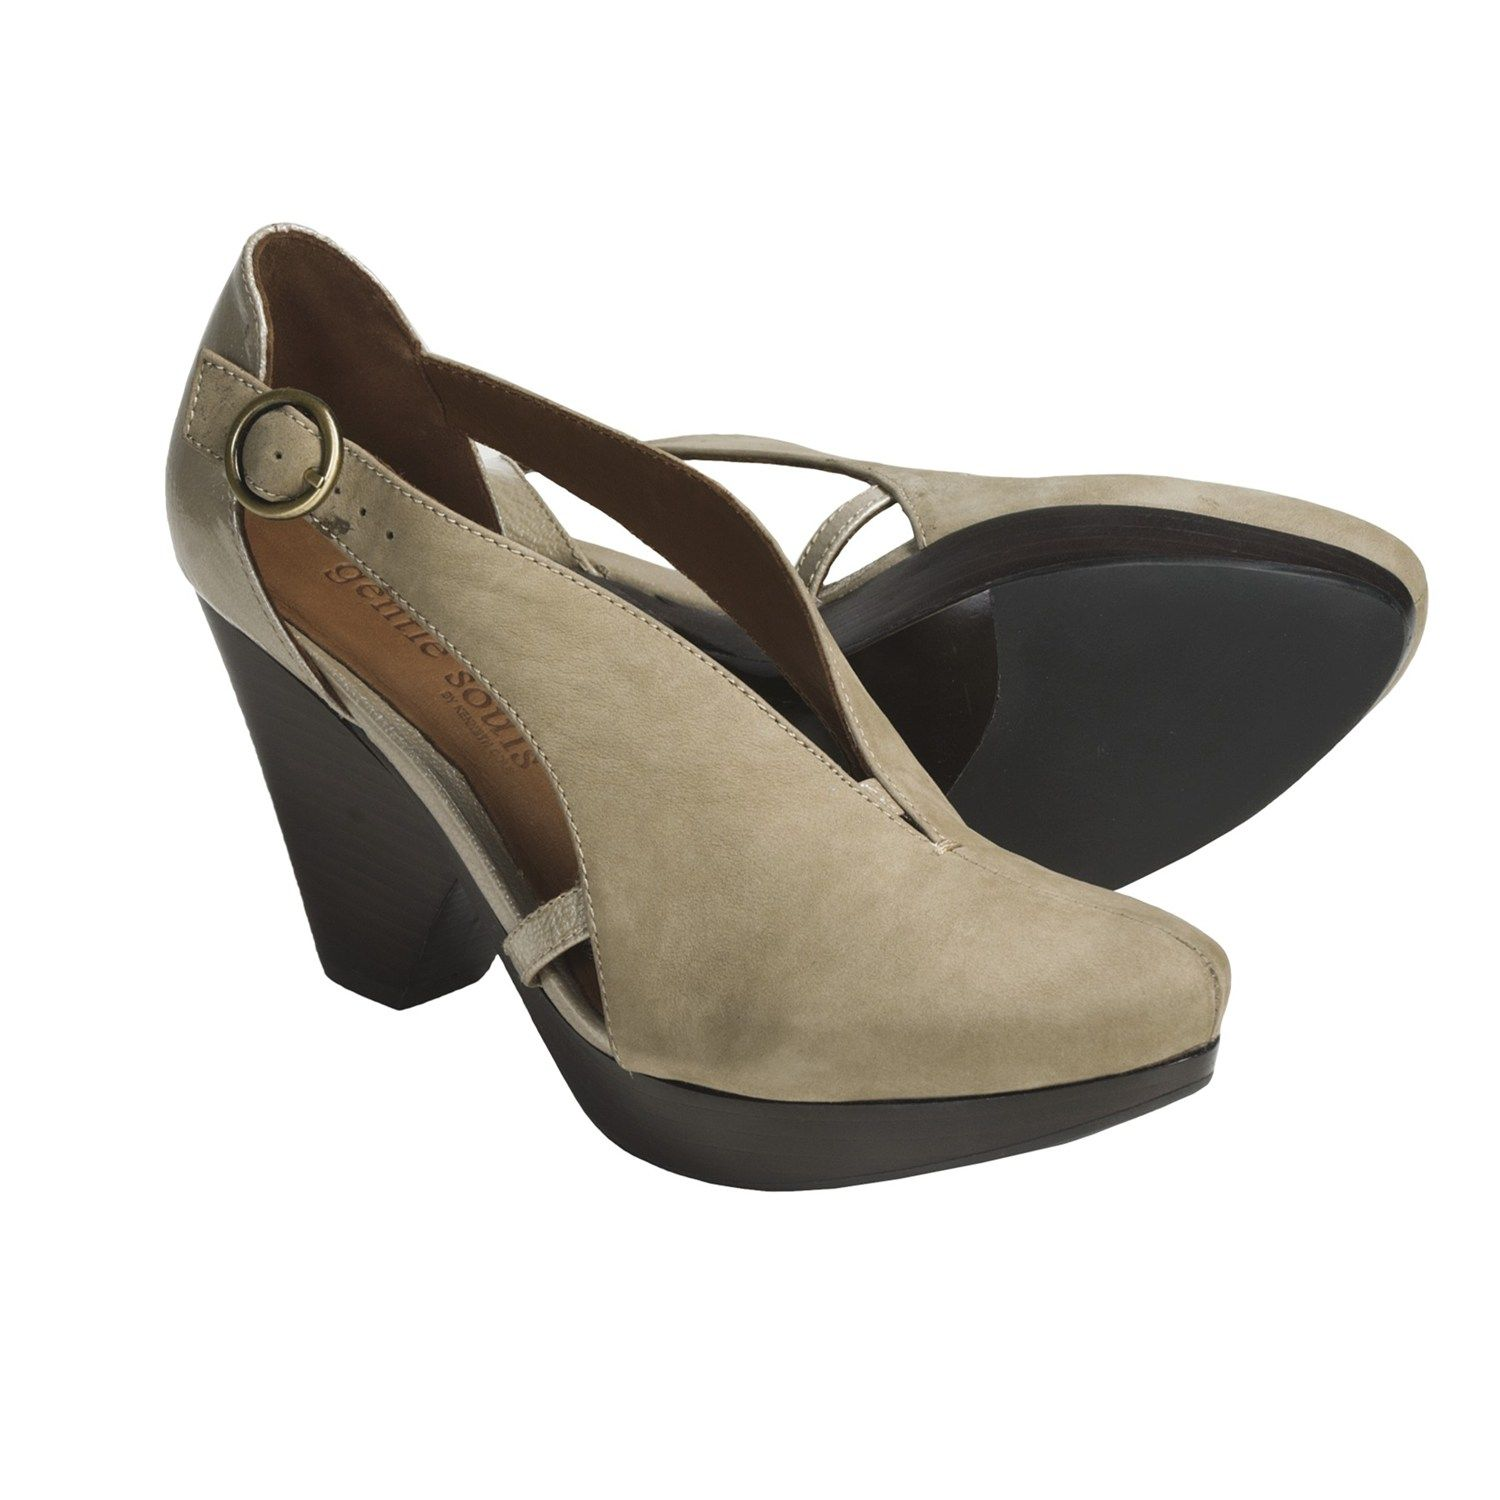 kenneth cole reaction shoes ladies